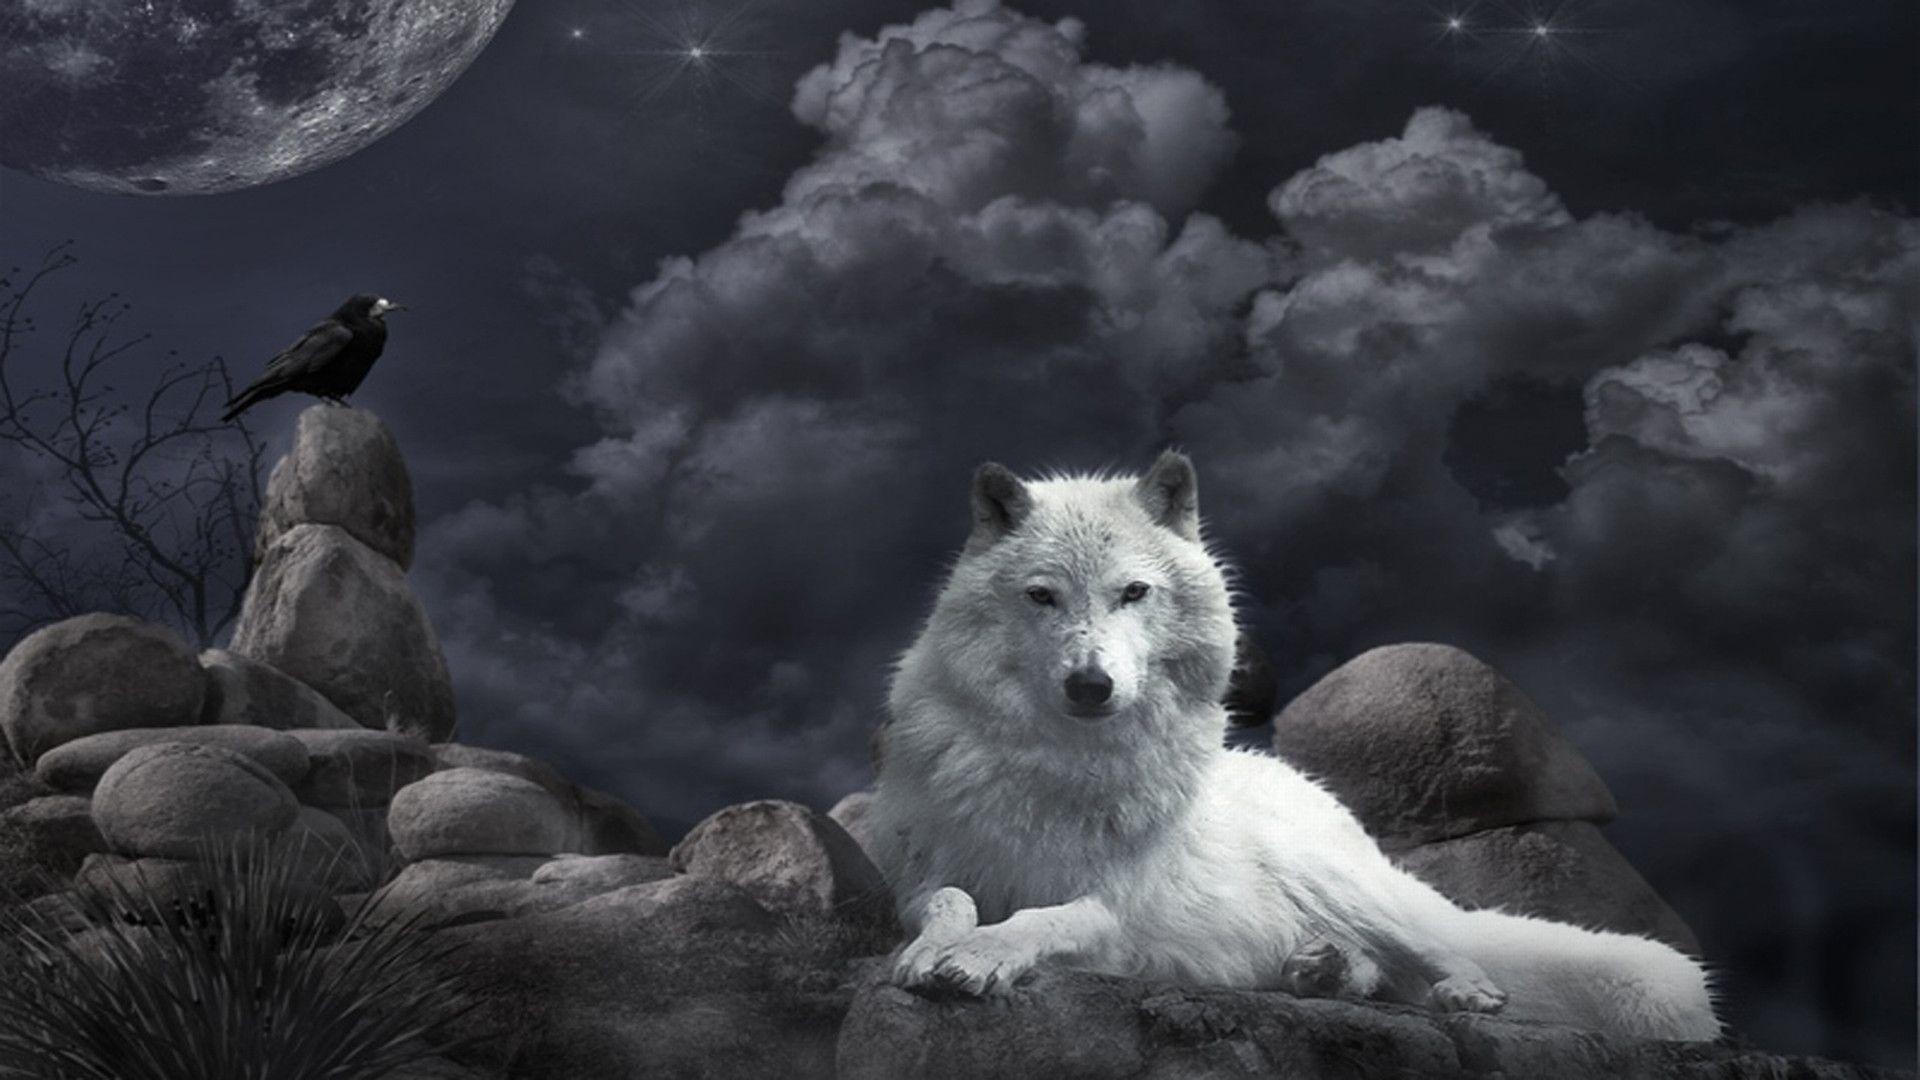 Wolf And Bird Wallpapers Free Backgrounds Deskto Wallpapers